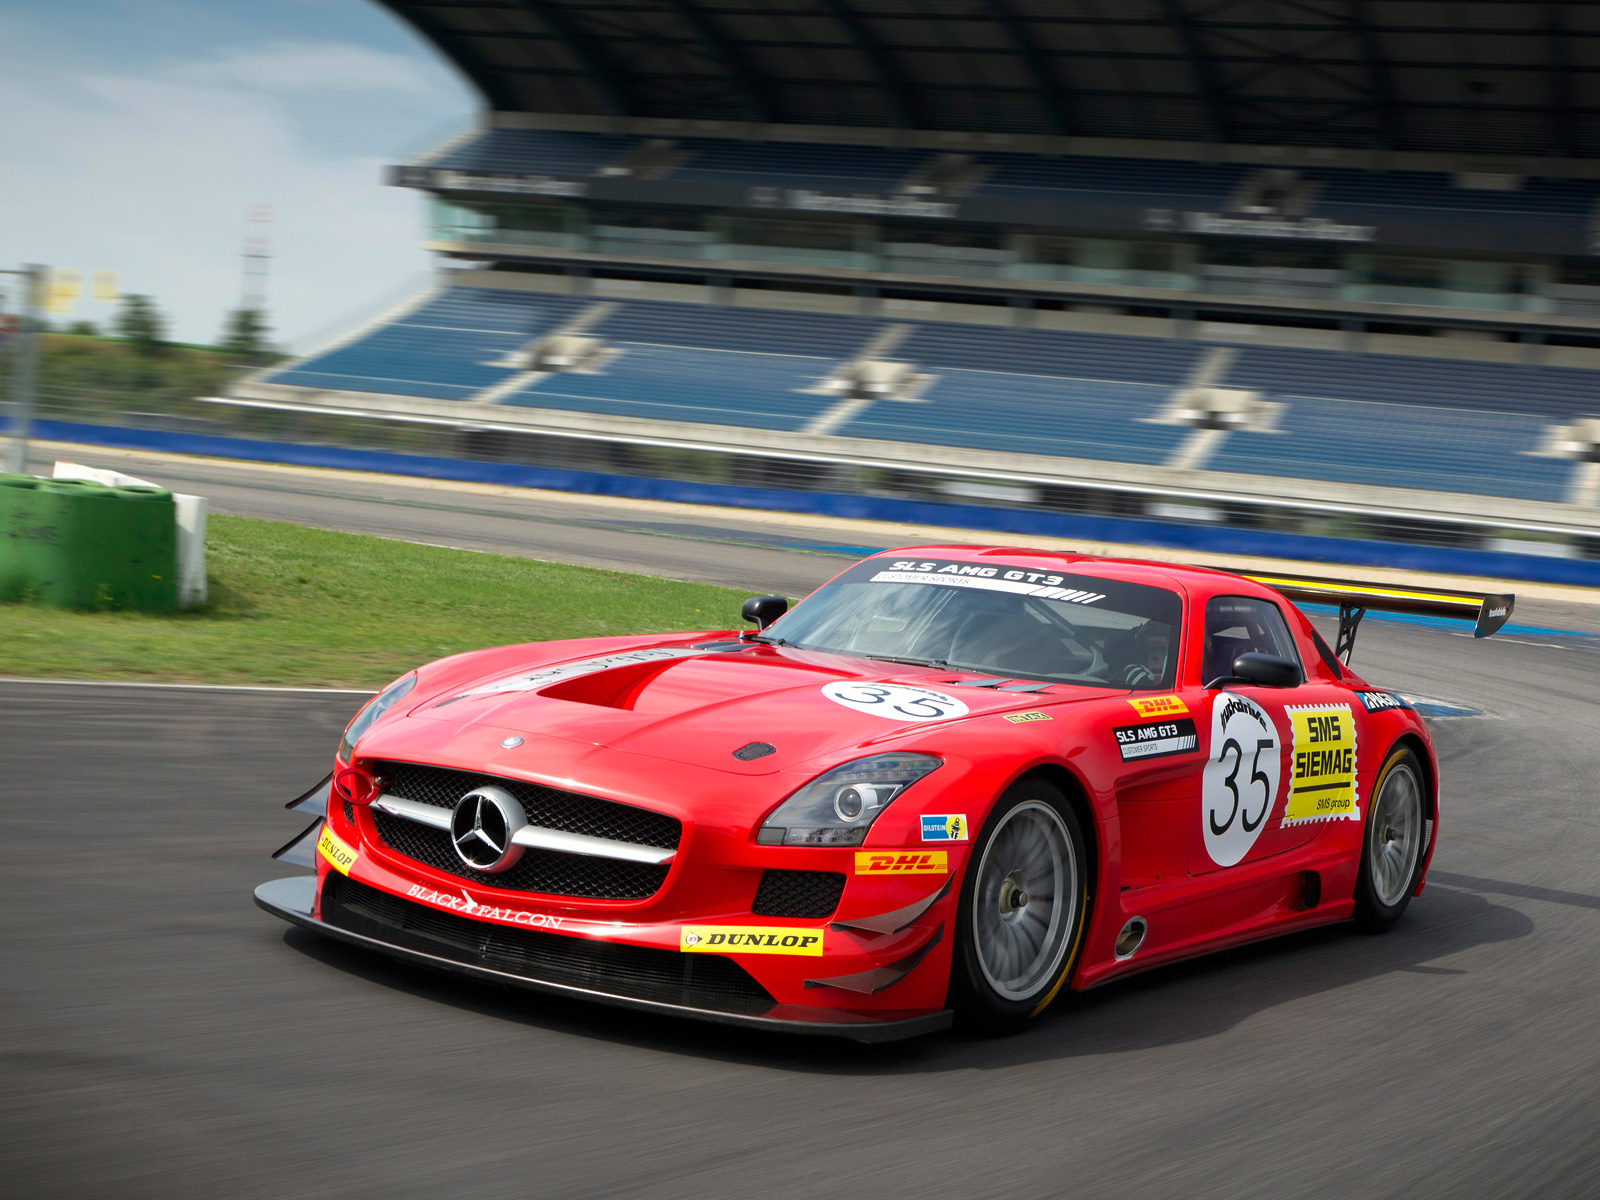 2012 mercedes benz sls amg gt3 black falcon 2012 sports cars for Mercedes benz gt3